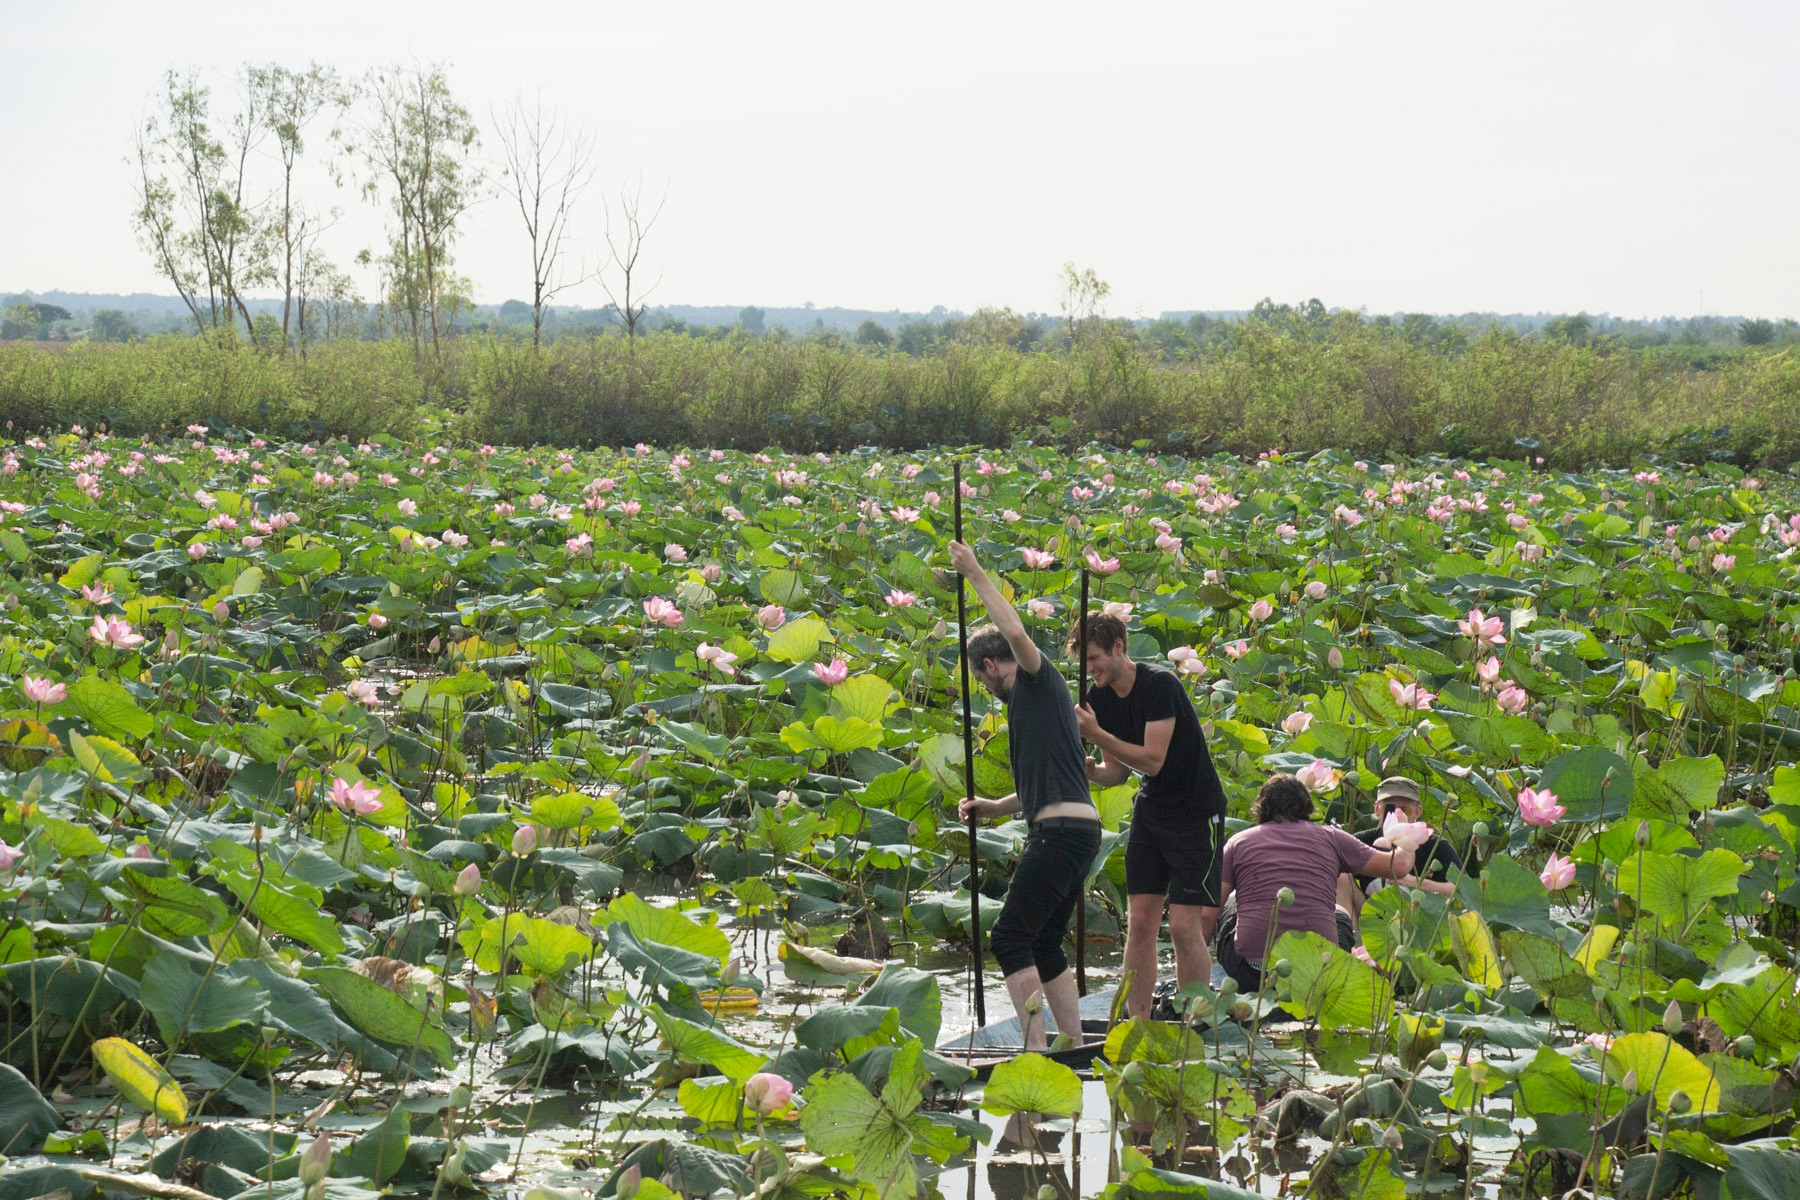 thailand-group-boat-shot-lotus-flowers